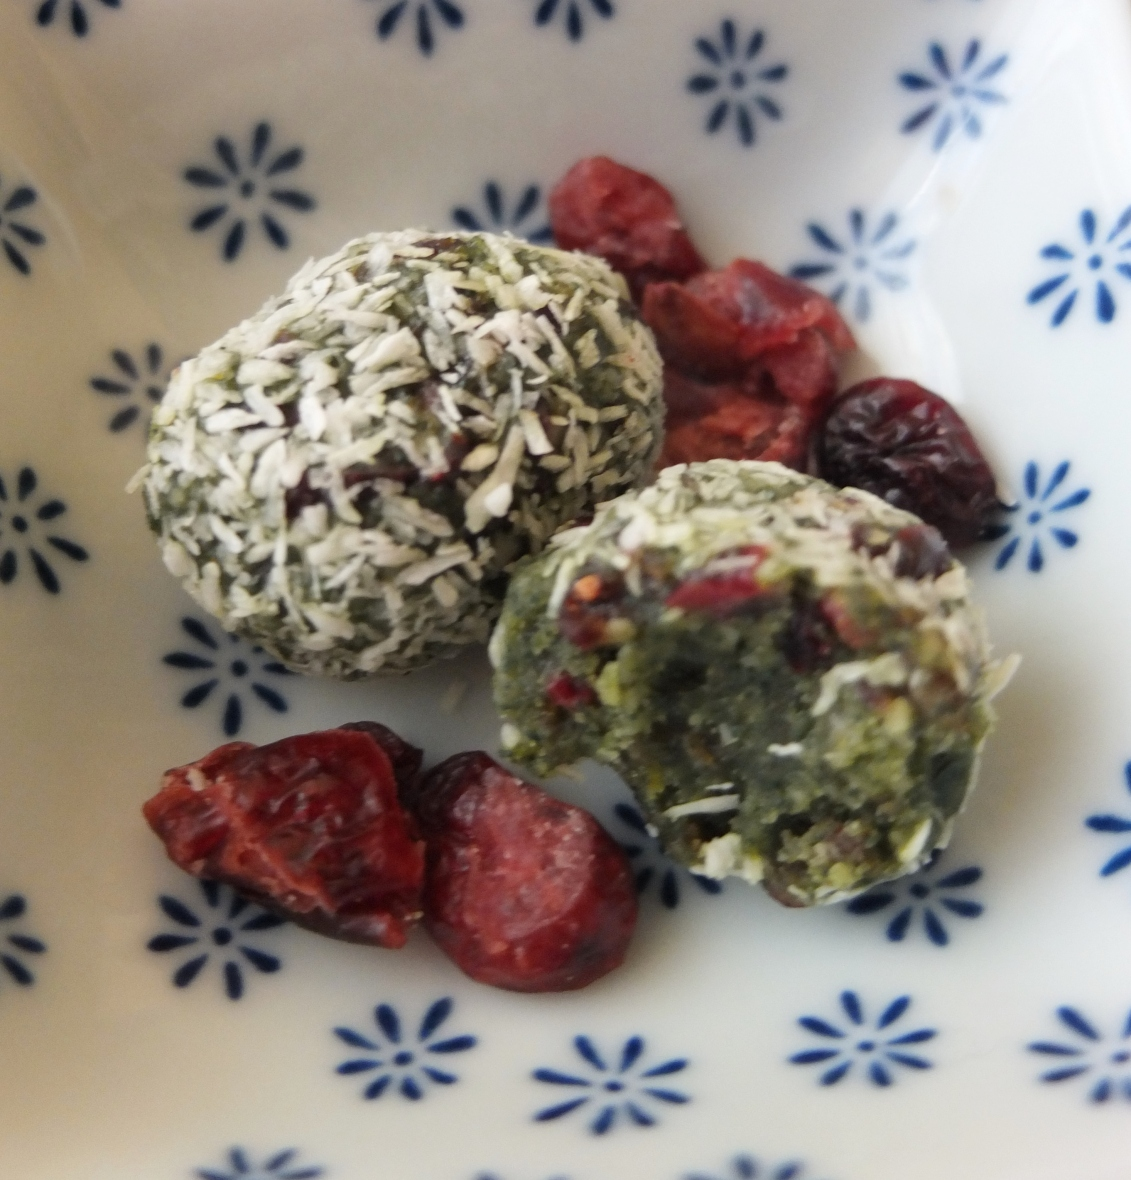 Spirulina date and cranberry bliss balls with matcha, ginger and orange zest